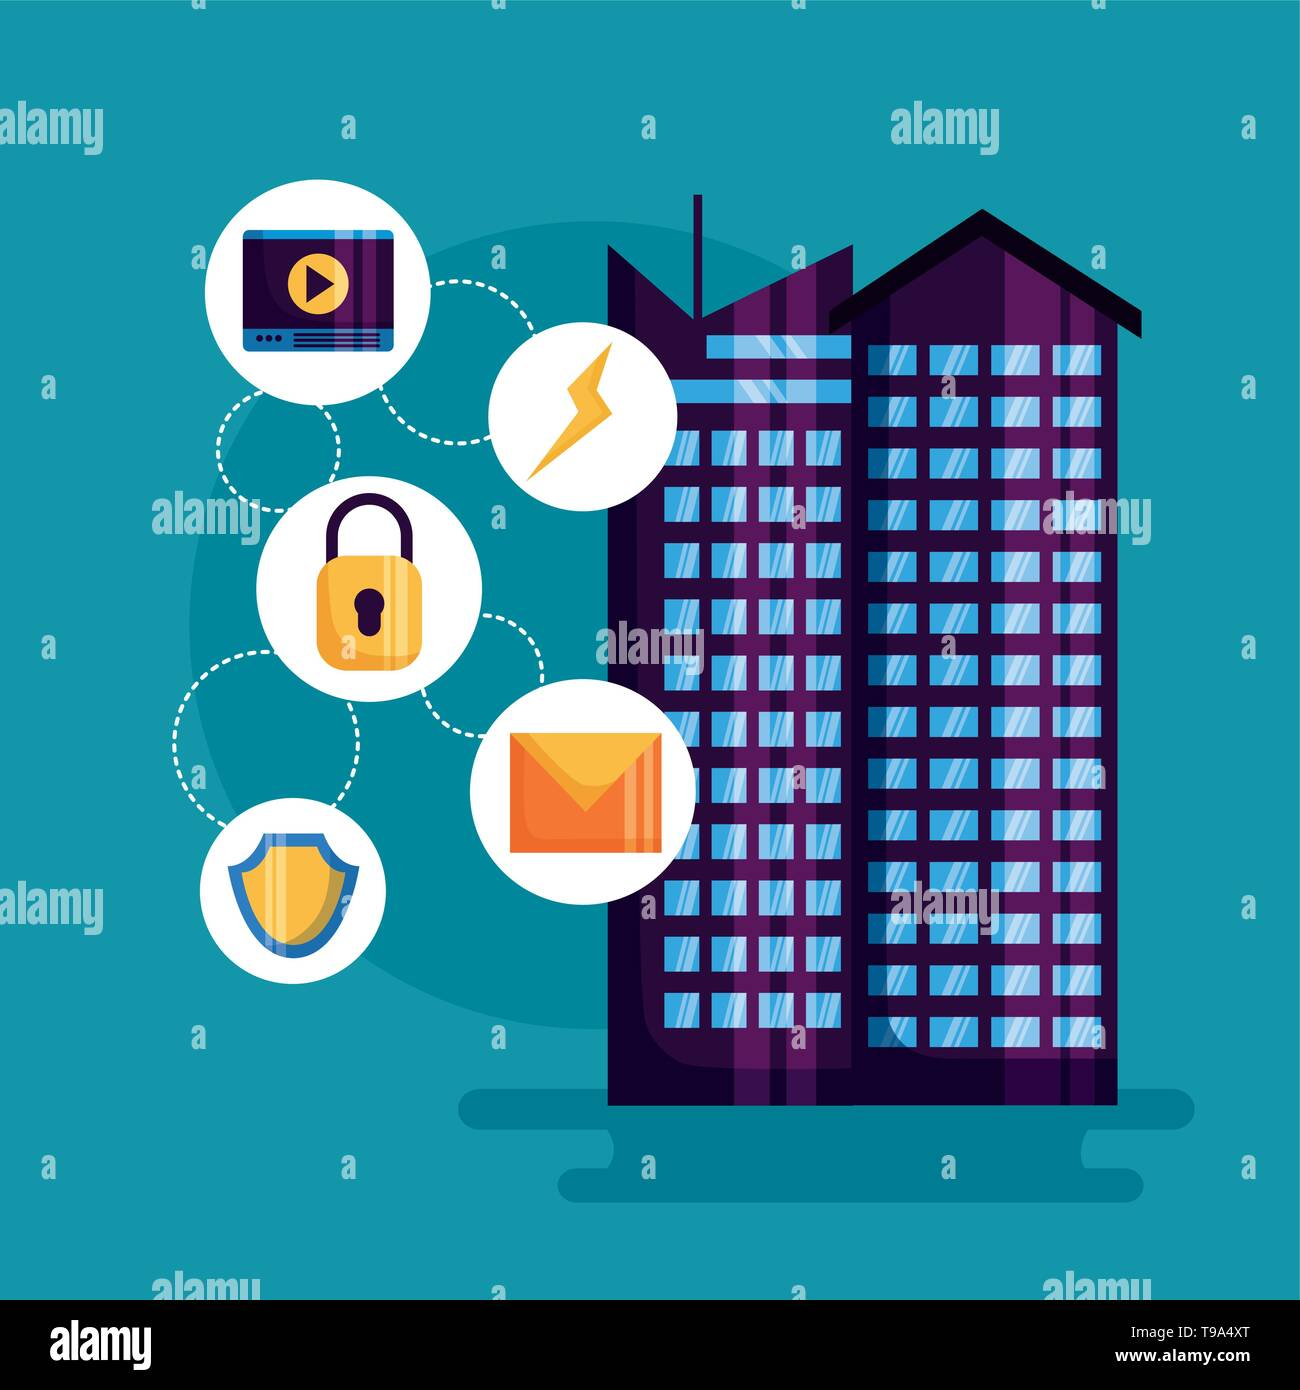 smart city design Stock Vector